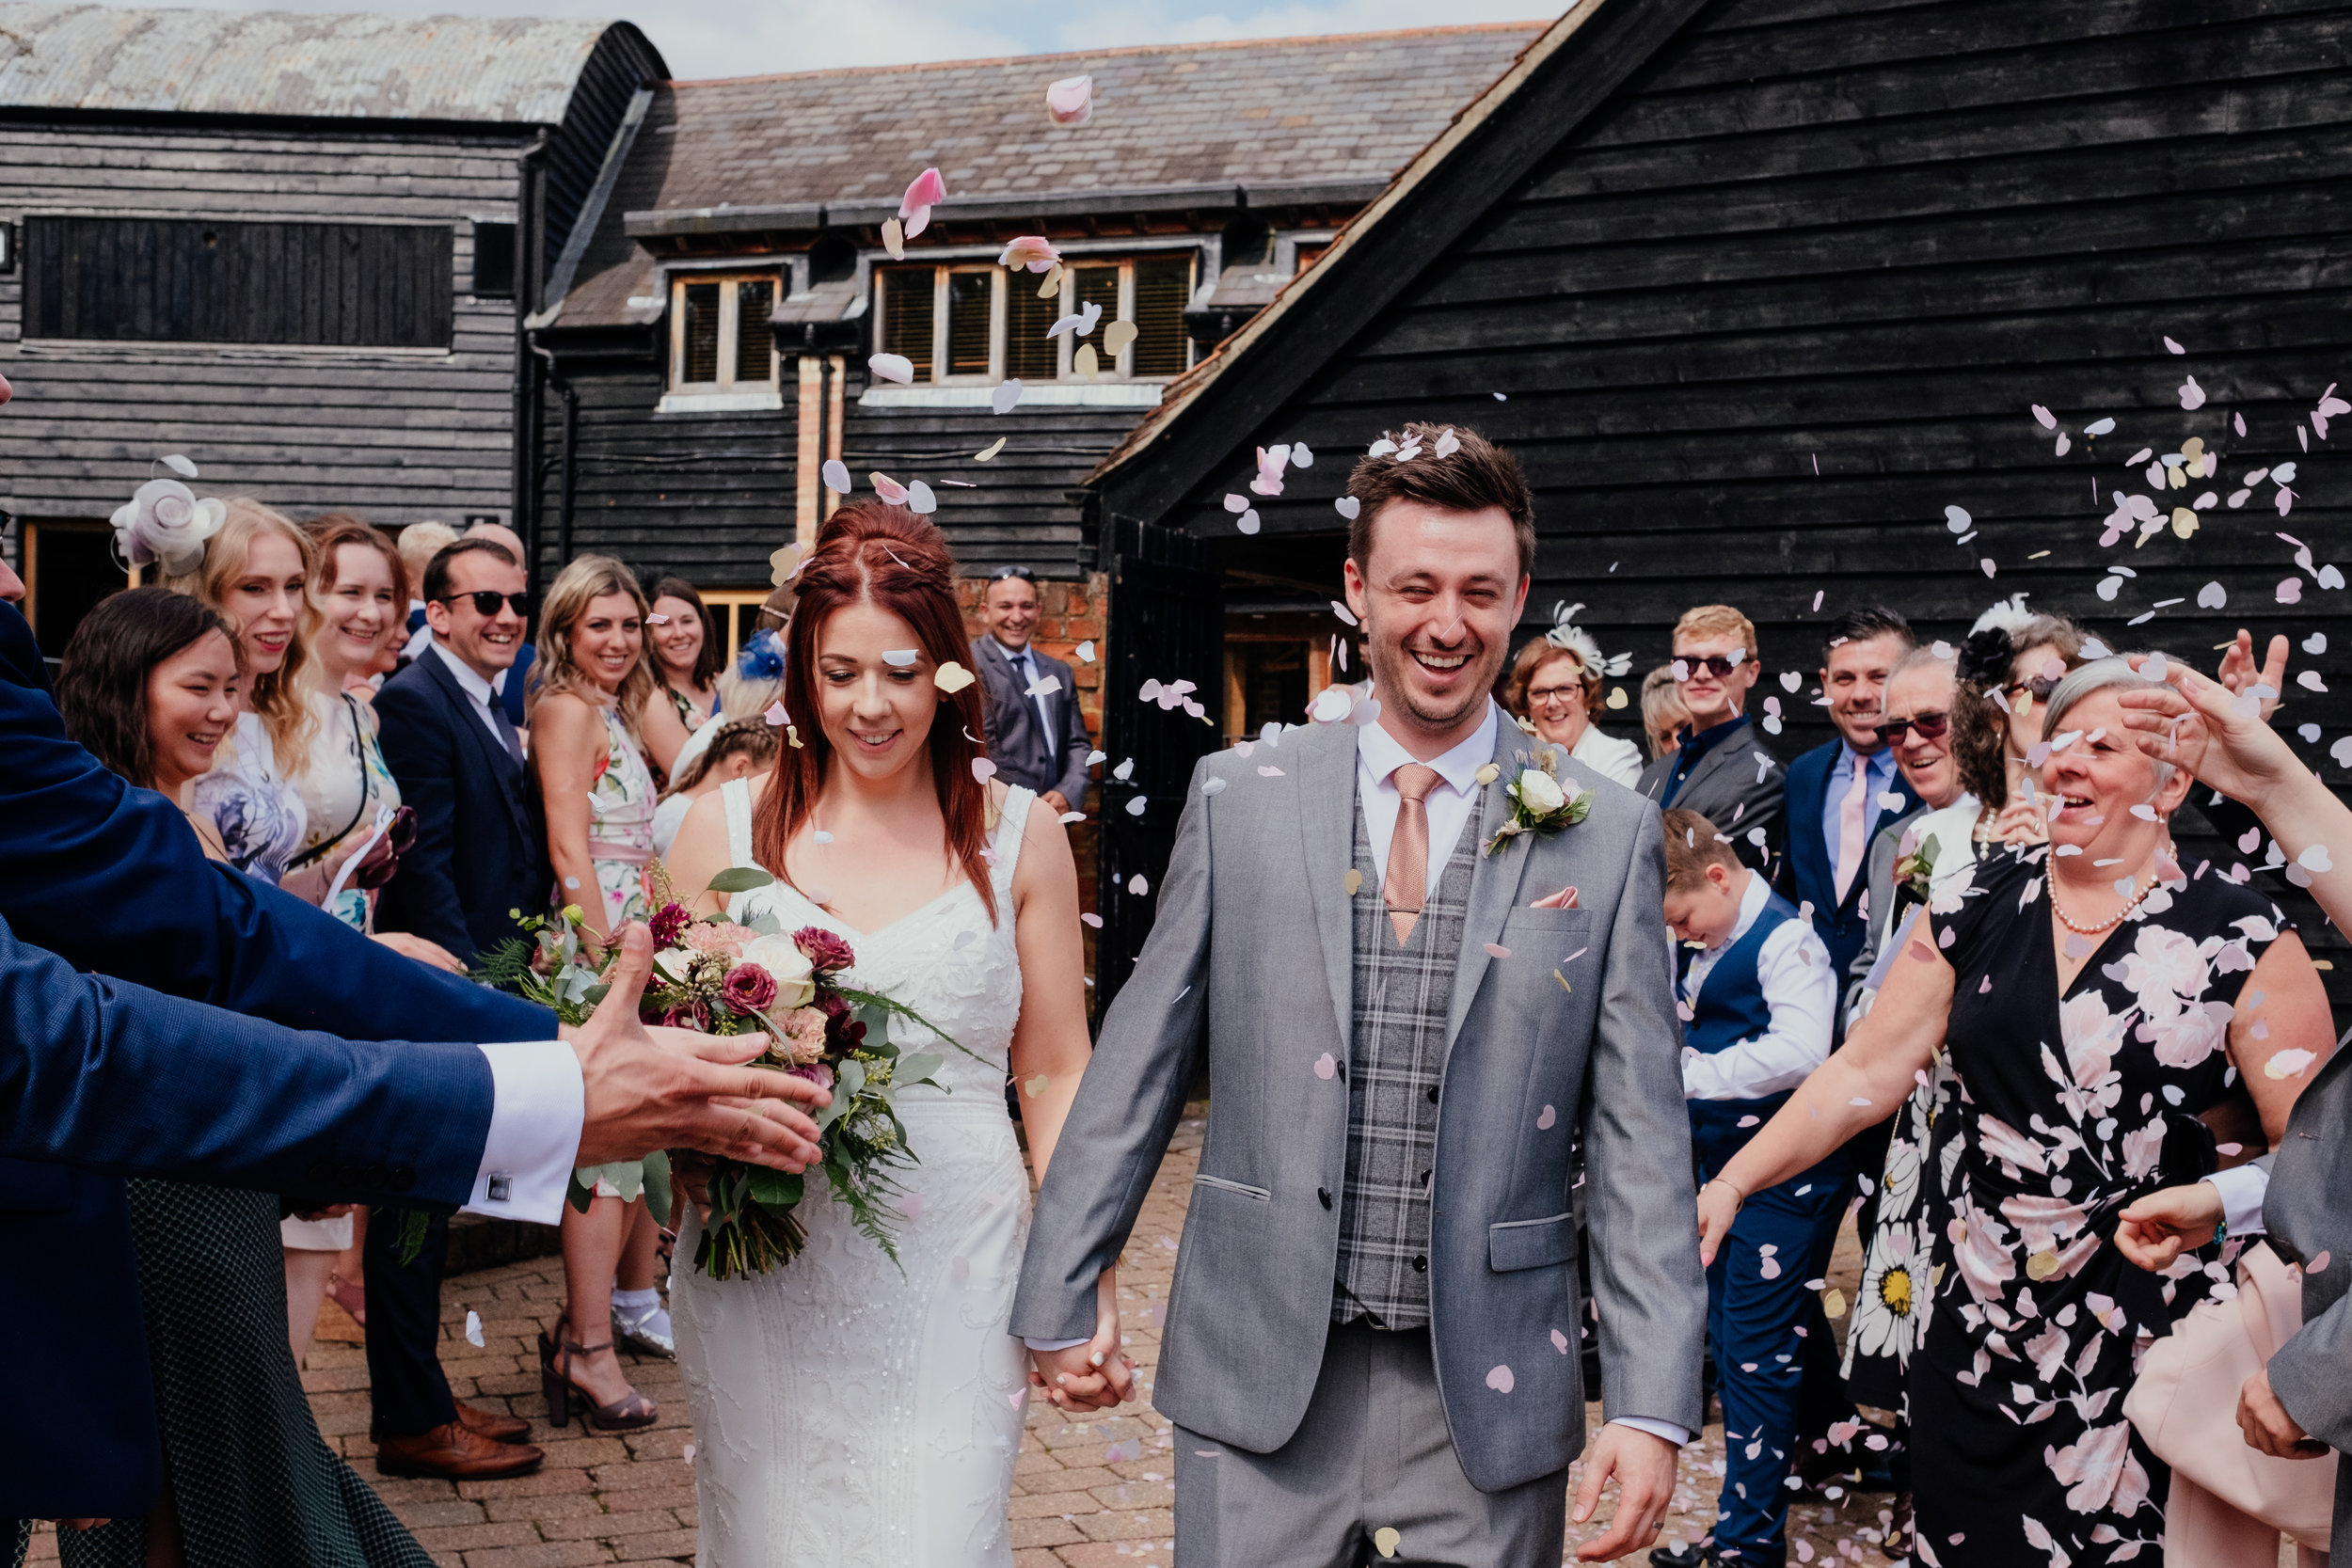 biodegradable confetti at Tewin Bury Farm wedding